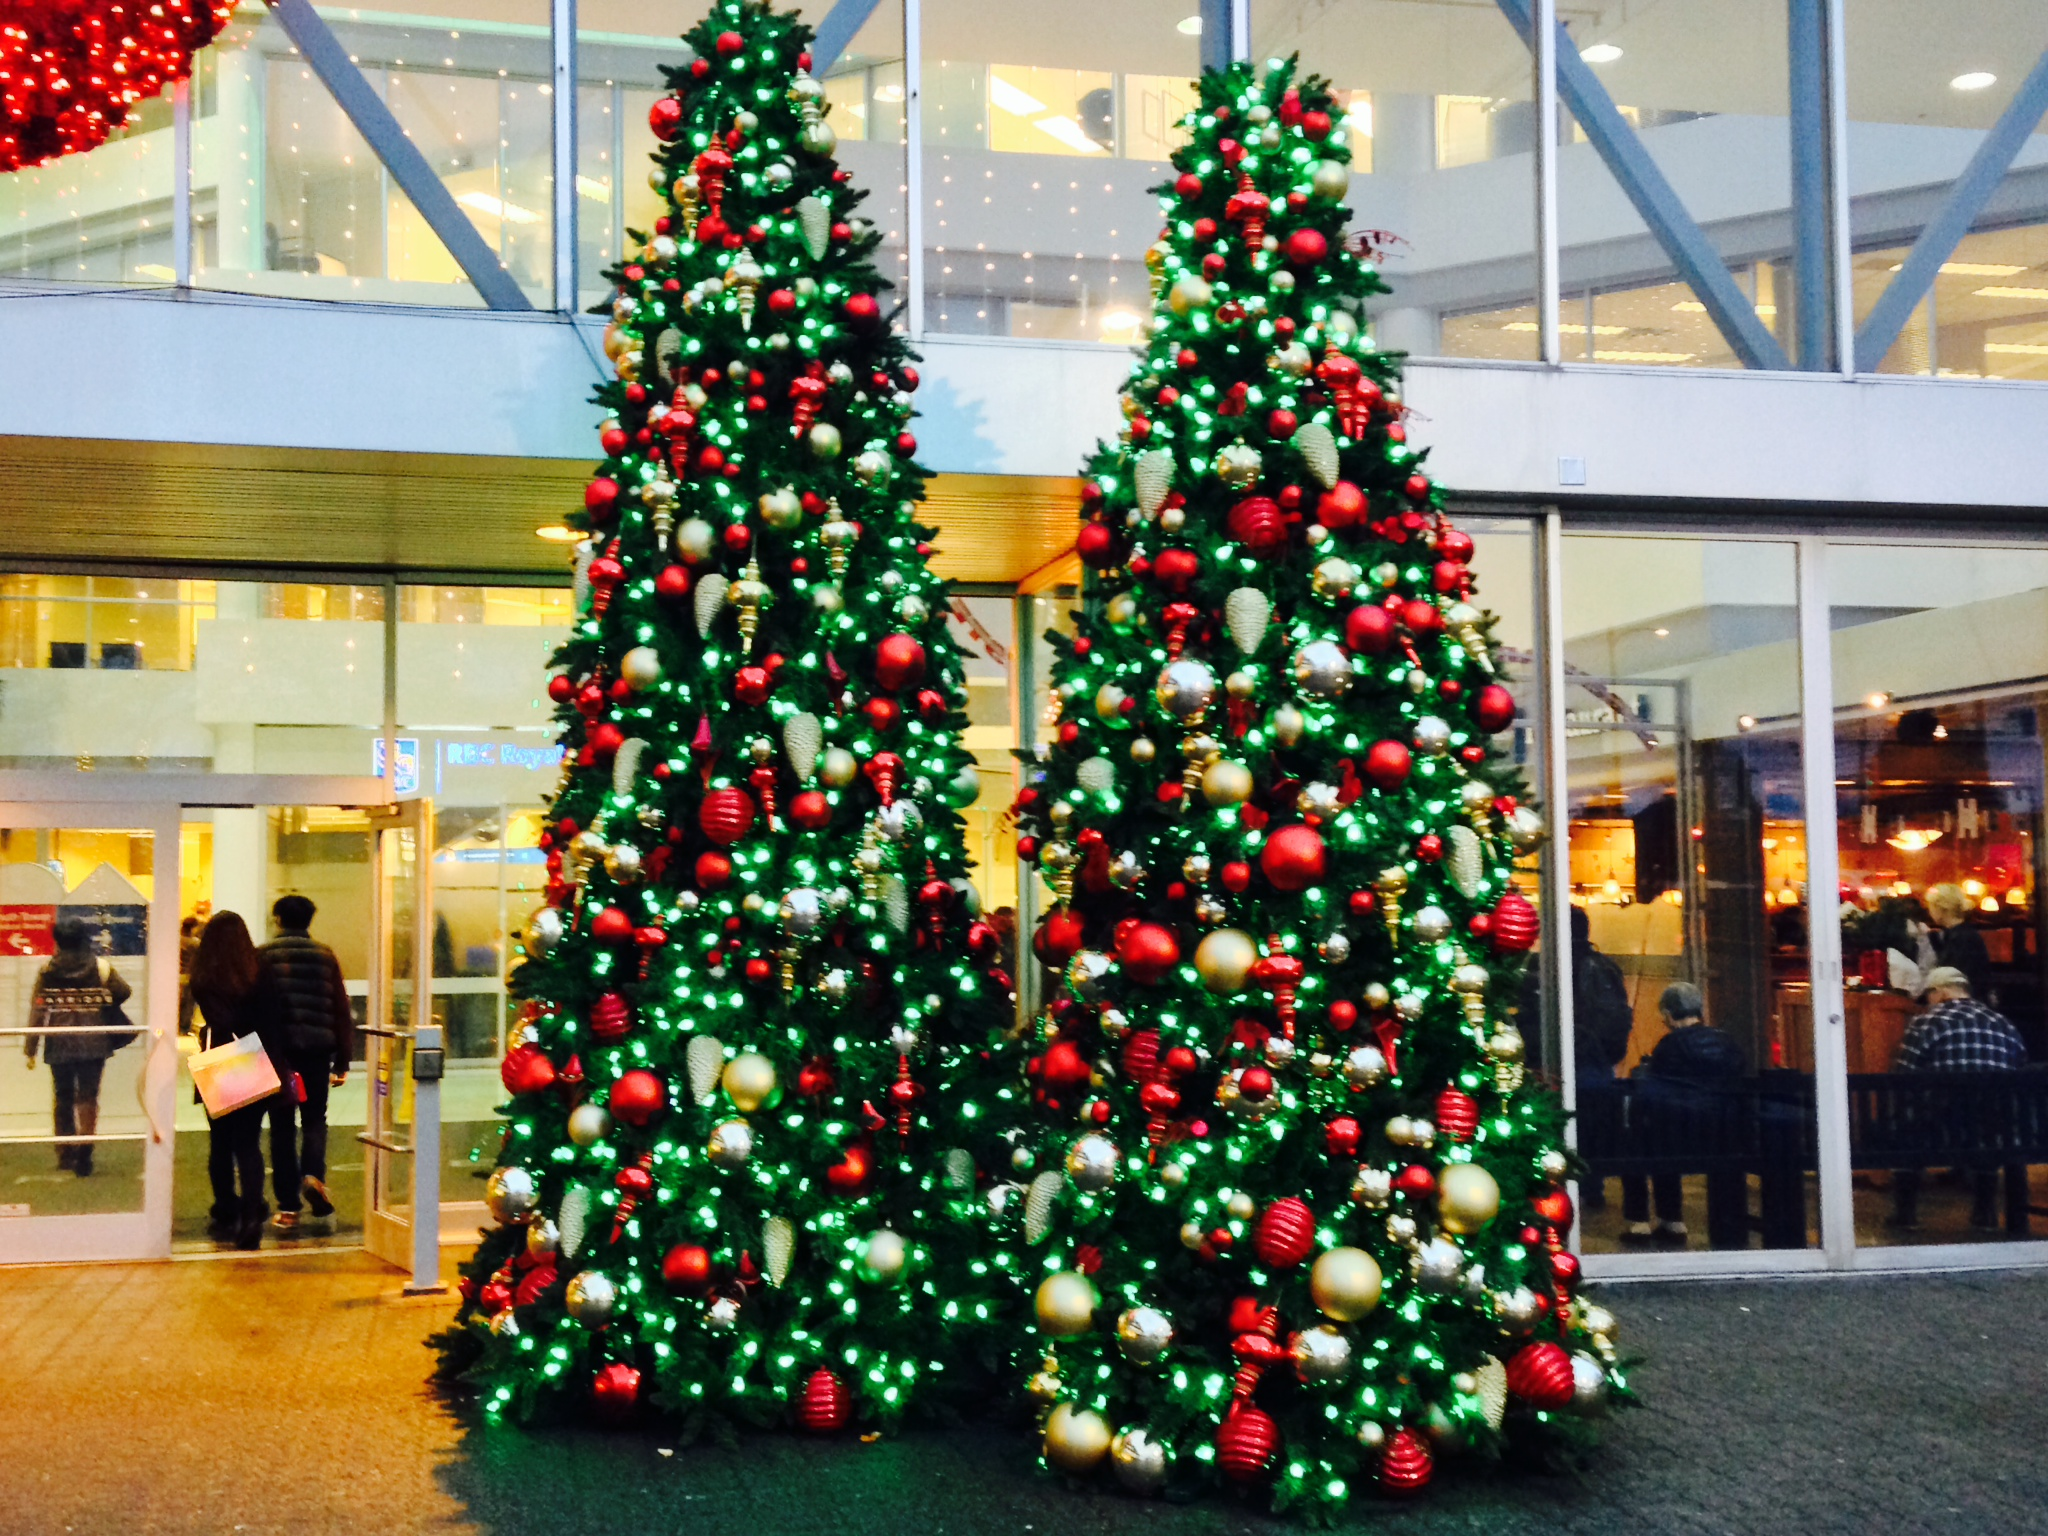 Commercial Christmas Tree.Get To Know Our Collection Of Commercial Christmas Trees